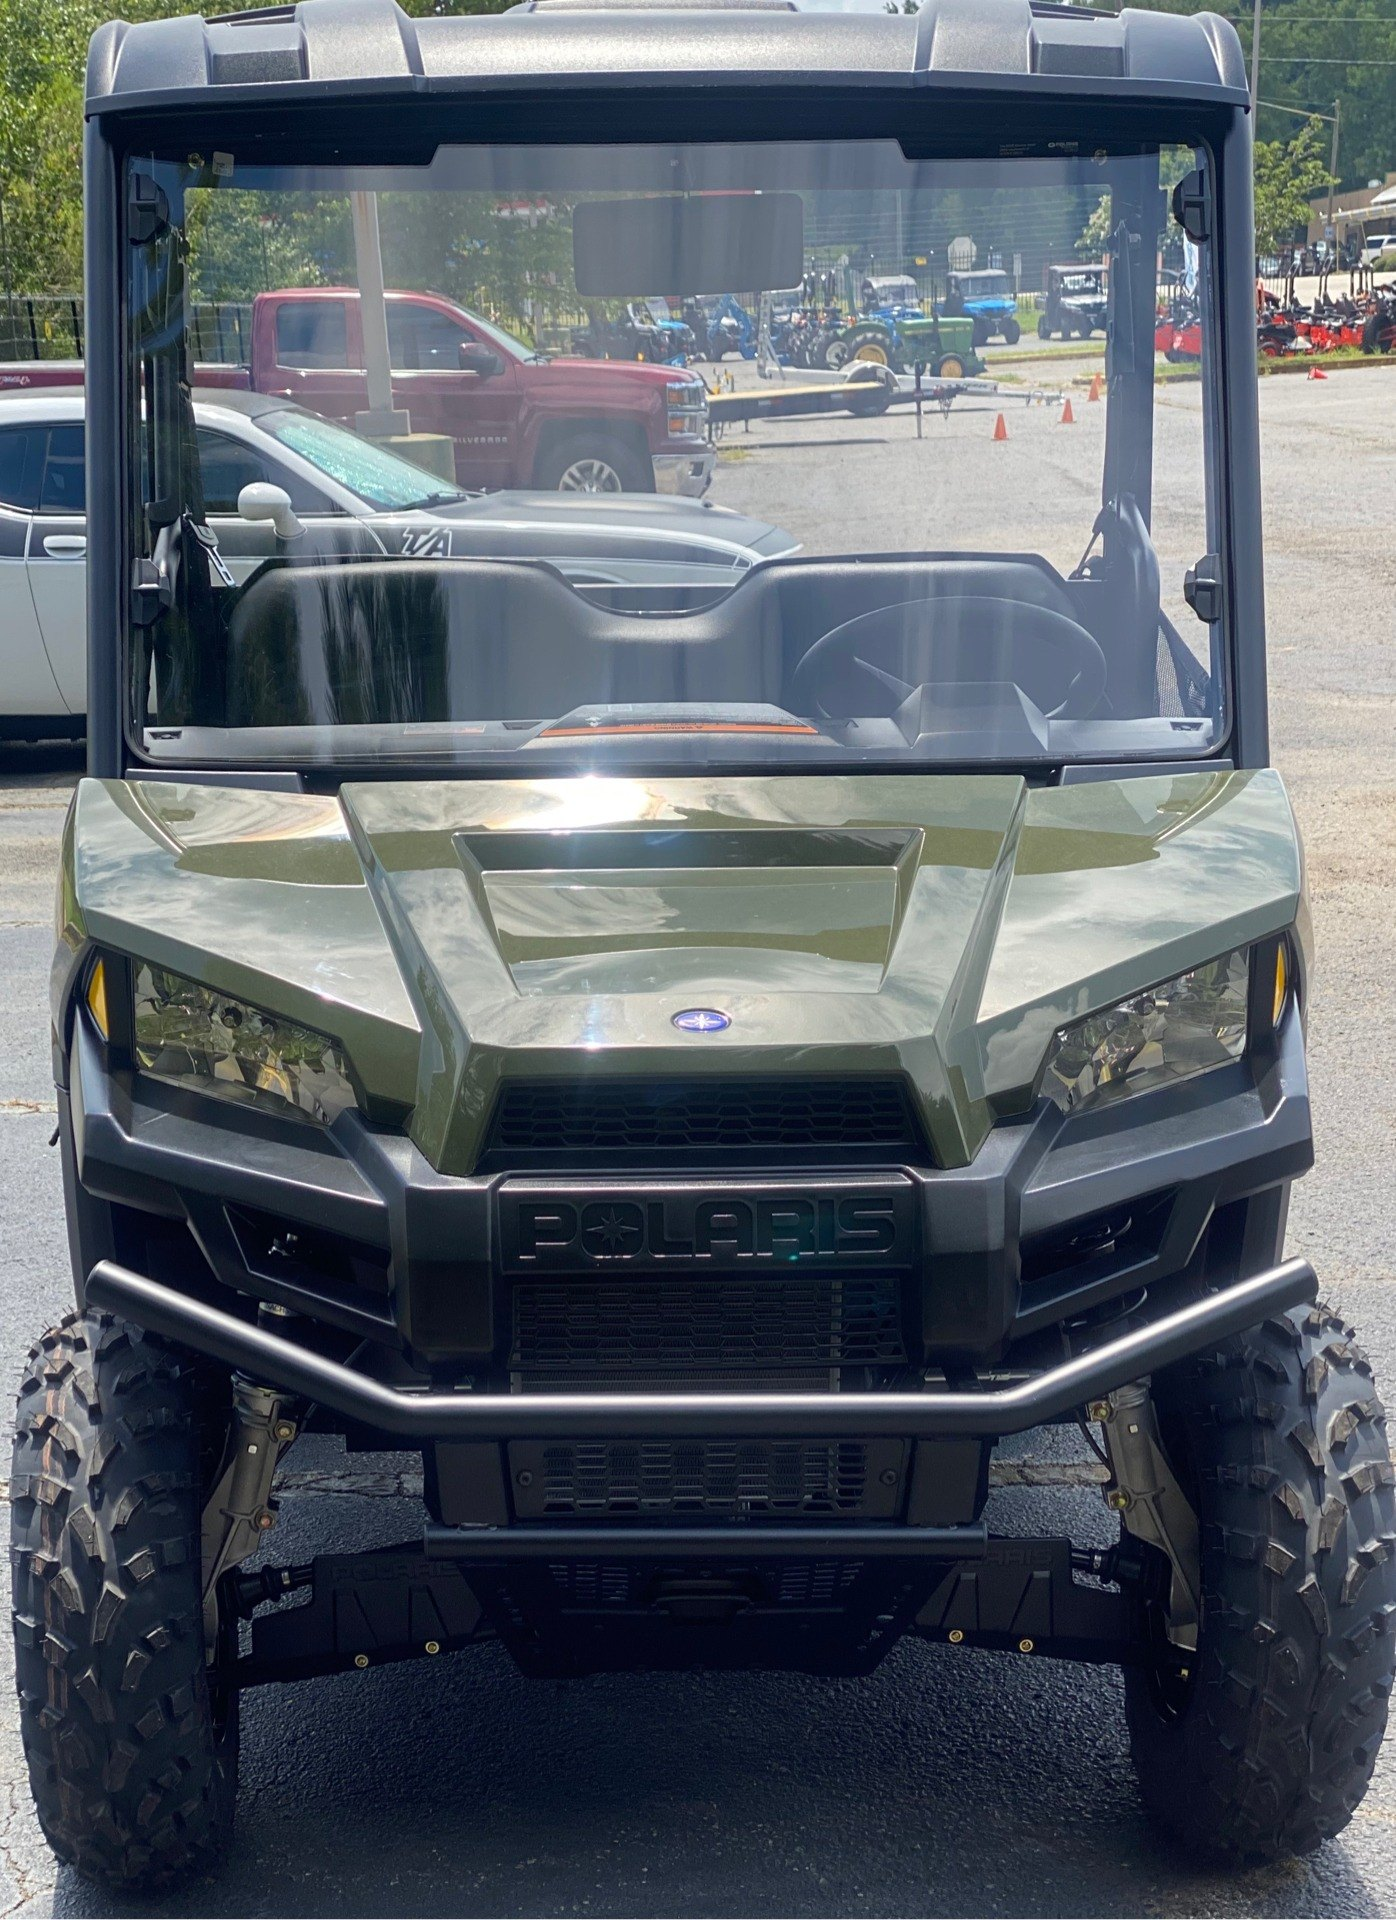 2021 Polaris Ranger 500 in Lancaster, South Carolina - Photo 4